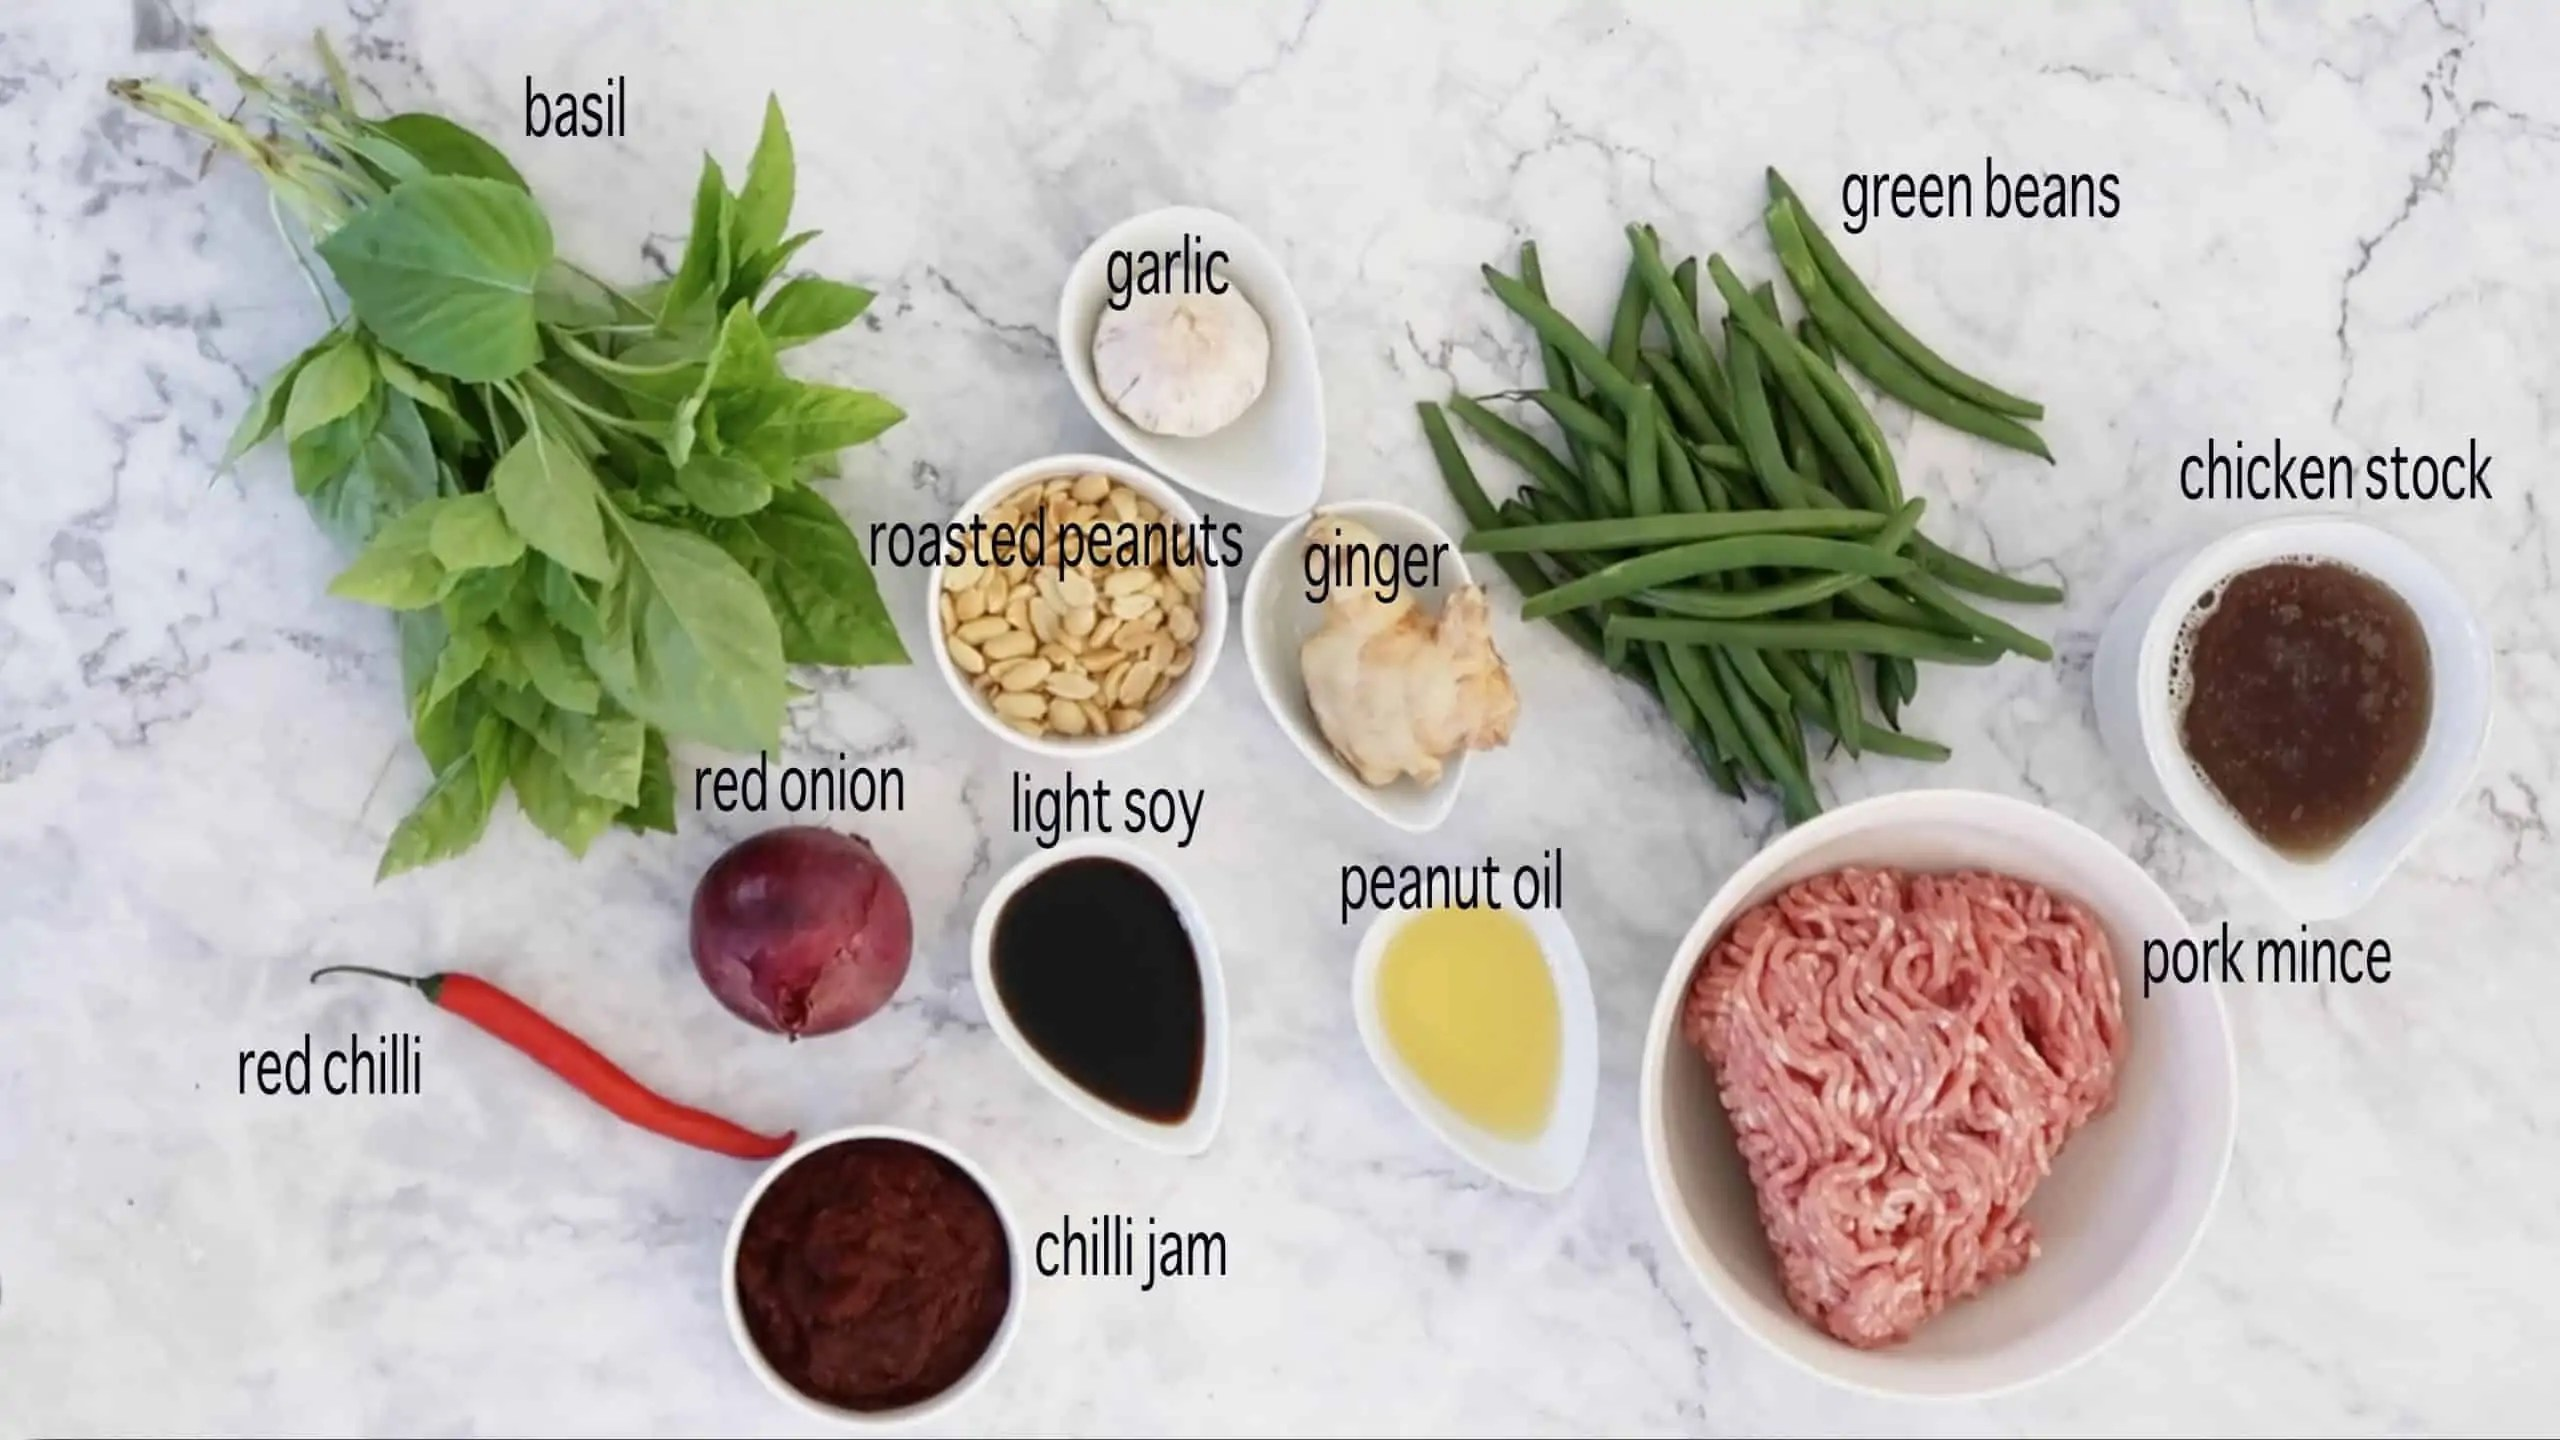 ingredients to cook Chilli Jam Pork Mince with Beans and Basil